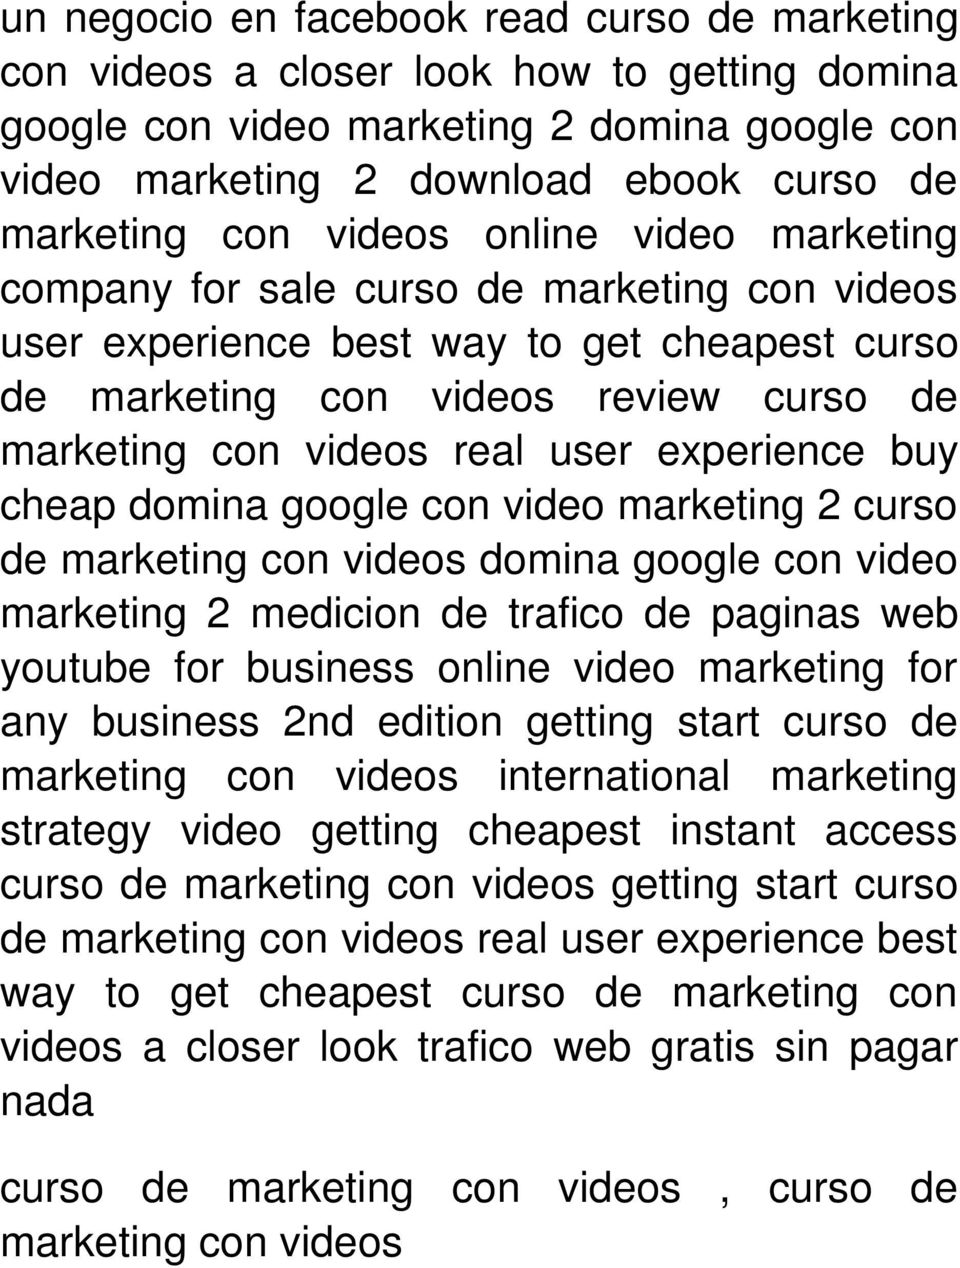 experience buy cheap domina google con video marketing 2 curso de marketing con videos domina google con video marketing 2 medicion de trafico de paginas web youtube for business online video